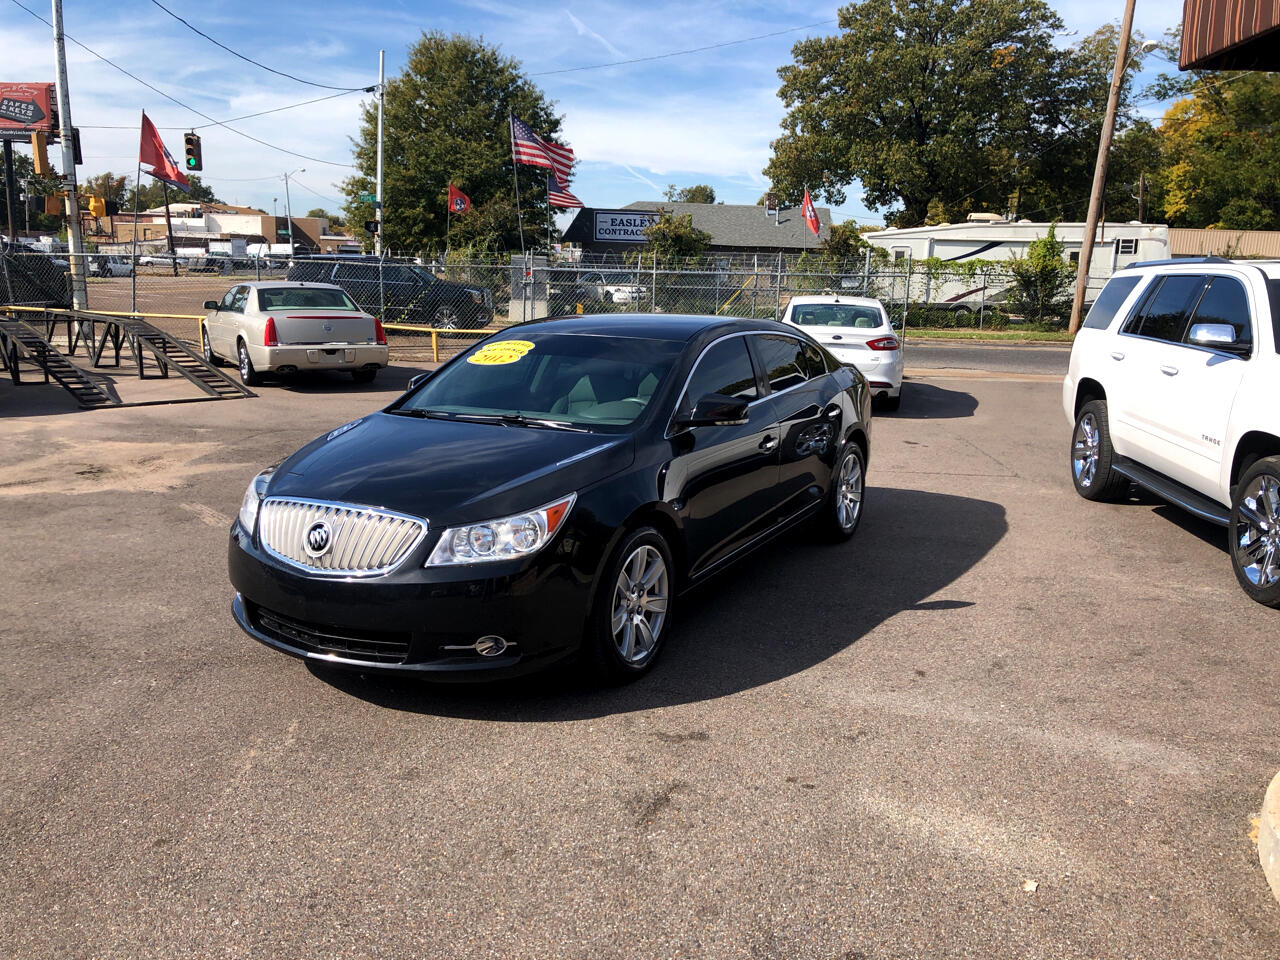 2012 Buick LaCrosse 4dr Sdn Leather FWD